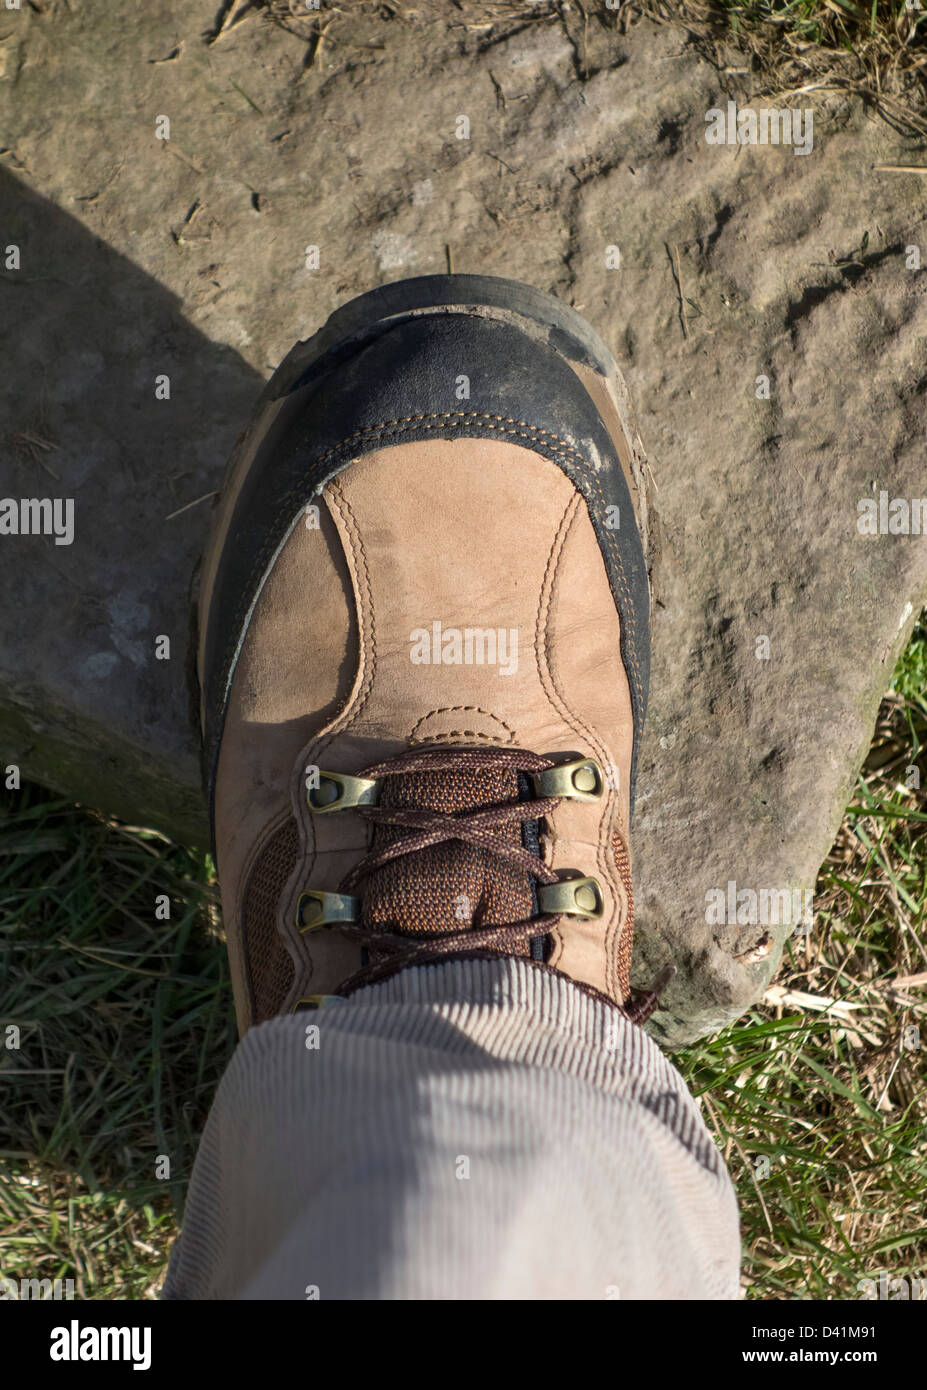 Close up of walking boot on the step of a stone stile on a public footpath, UK - Stock Image